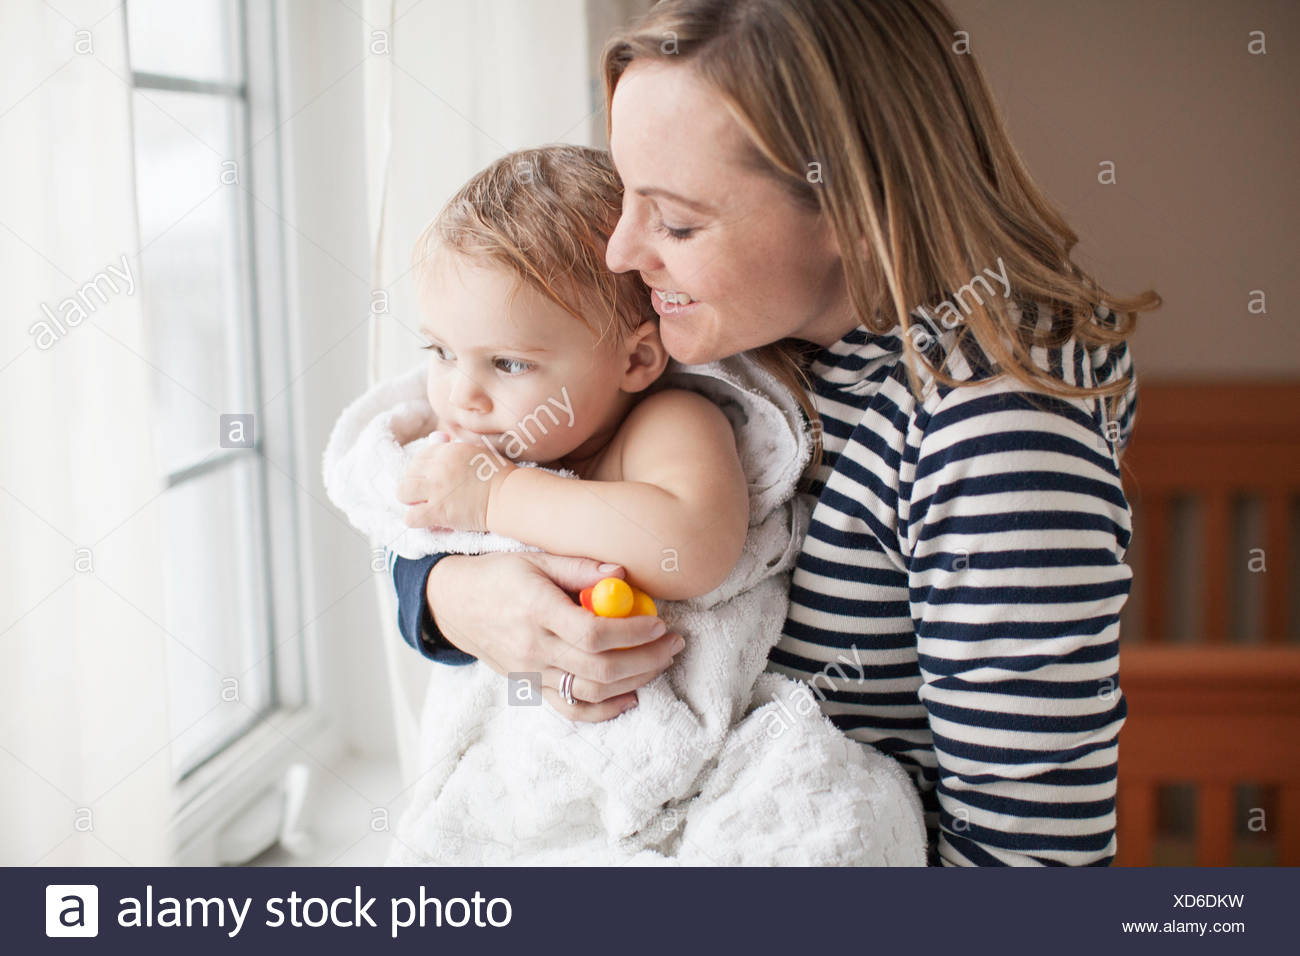 Mother snuggling baby girl after her bath Stock Photo